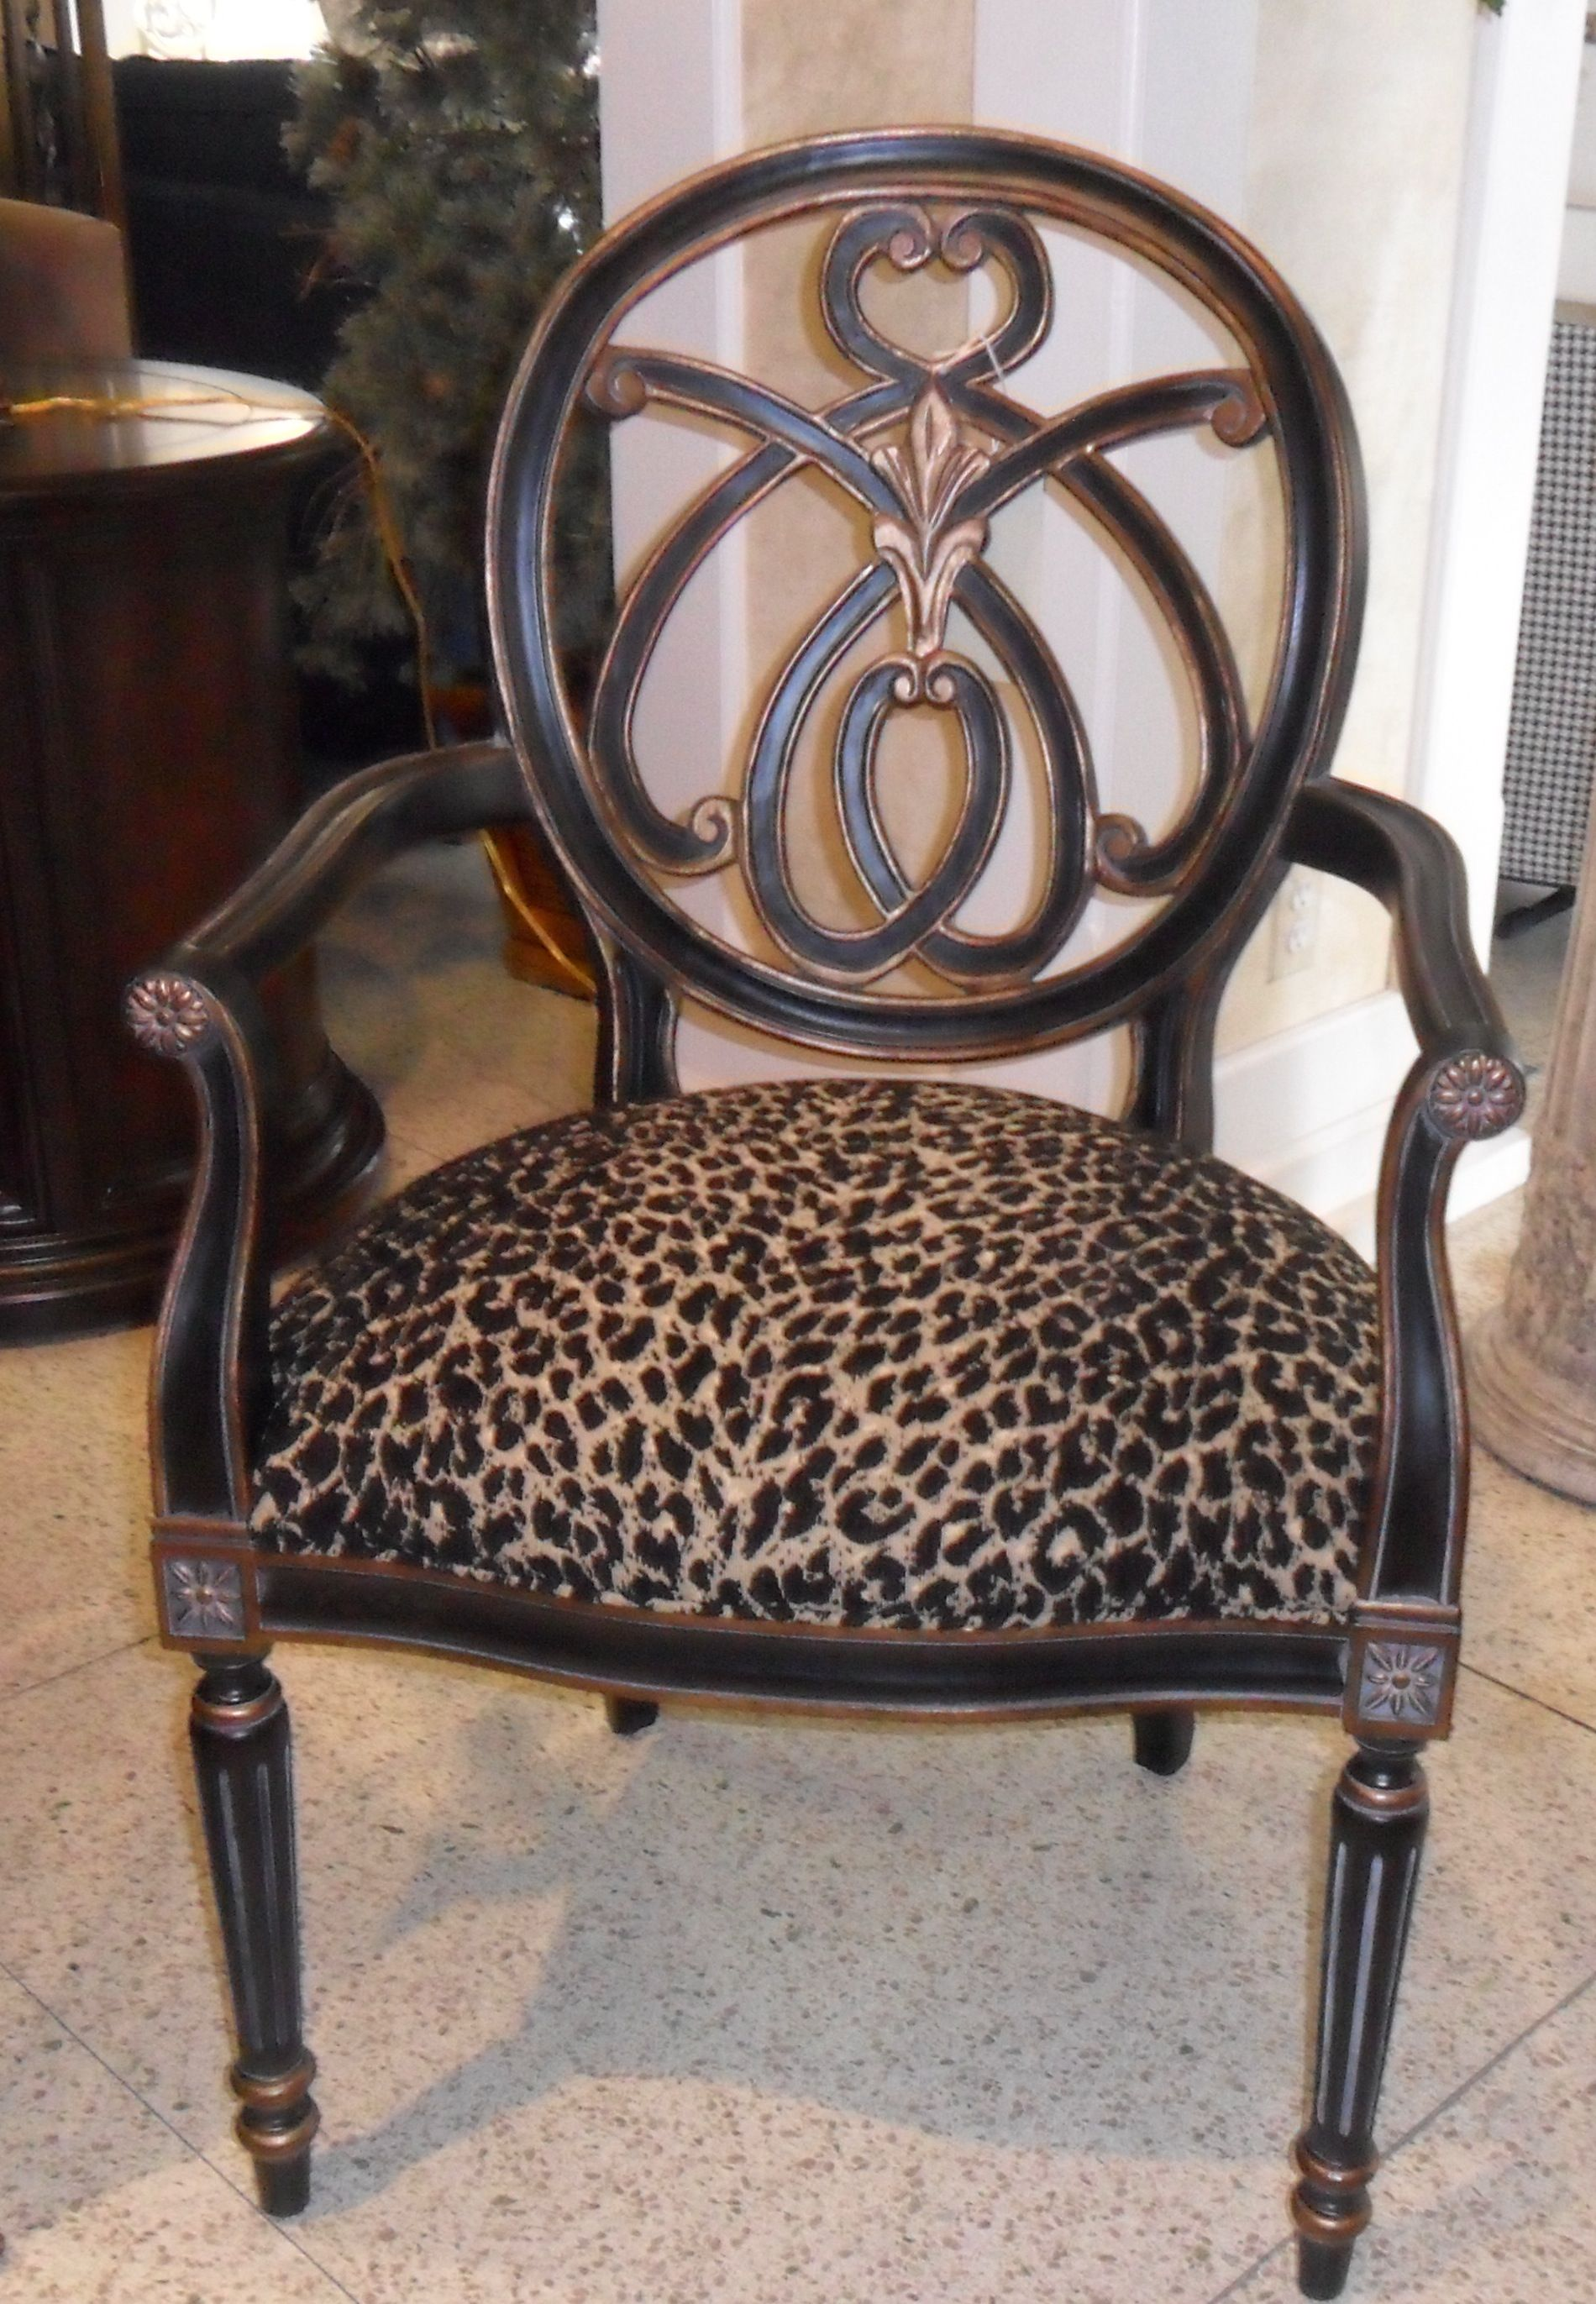 Leopard Print Chair Furniture Animal Print Furniture